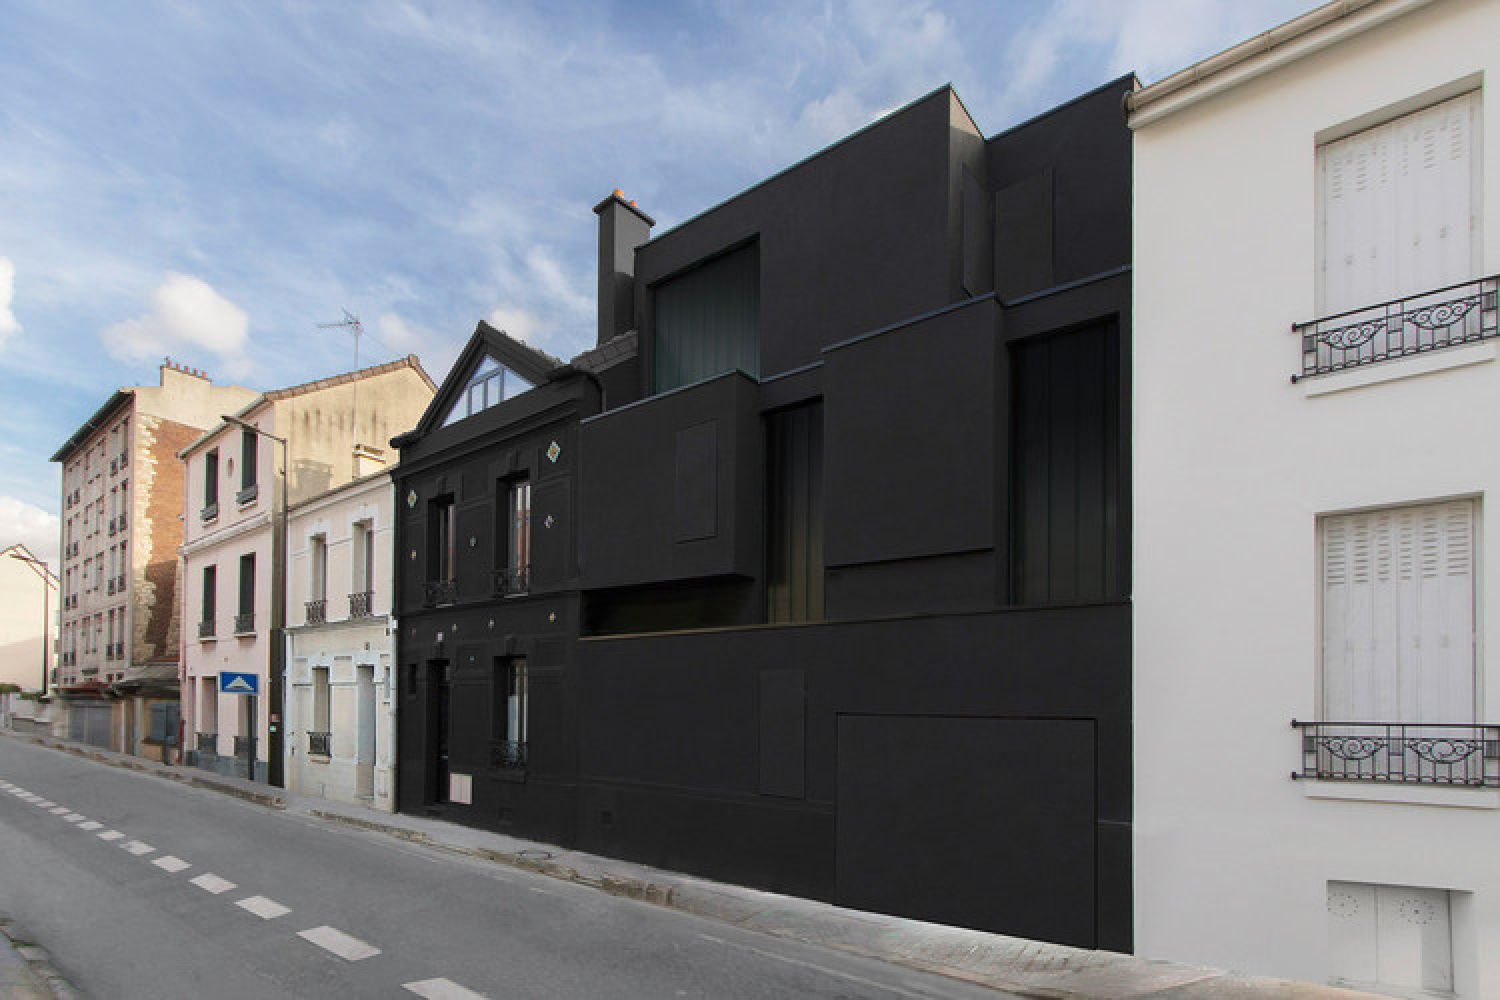 3BOX 92 - Arch. Stéphane Malka Architecture - Photo : Stéphane Malka Architecture